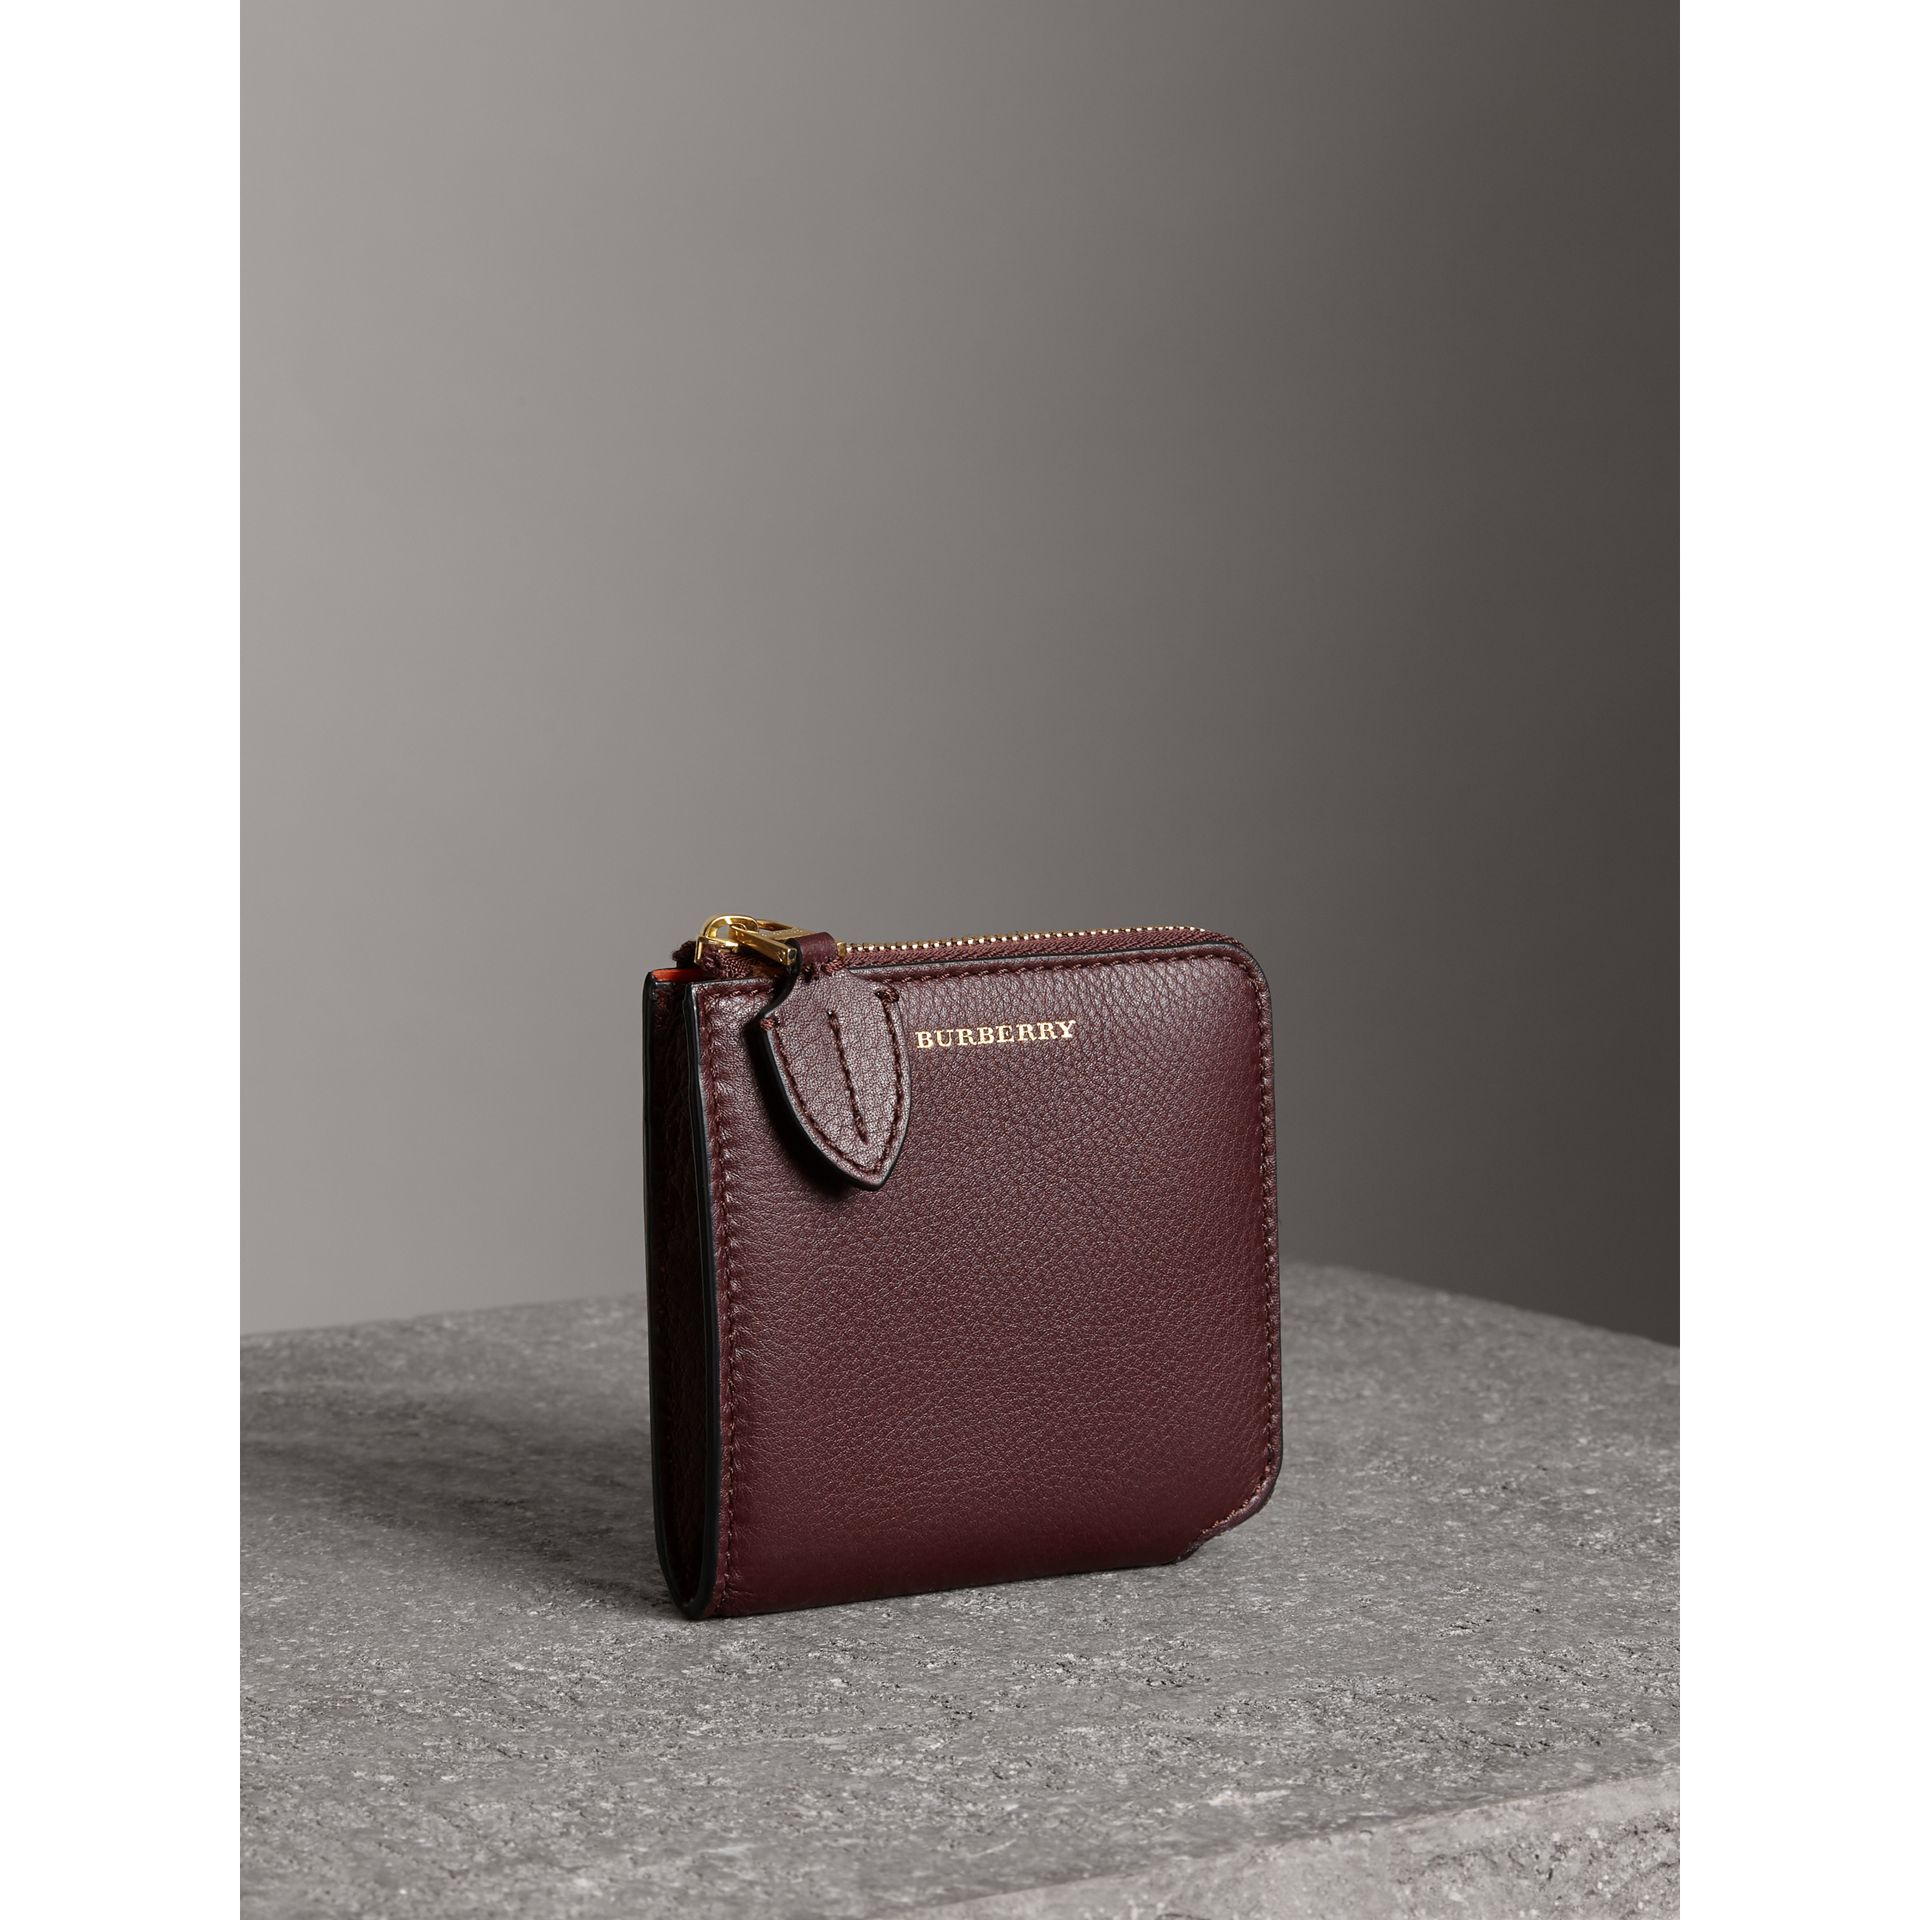 Grainy Leather Square Ziparound Wallet in Deep Claret - Women | Burberry Singapore - gallery image 4